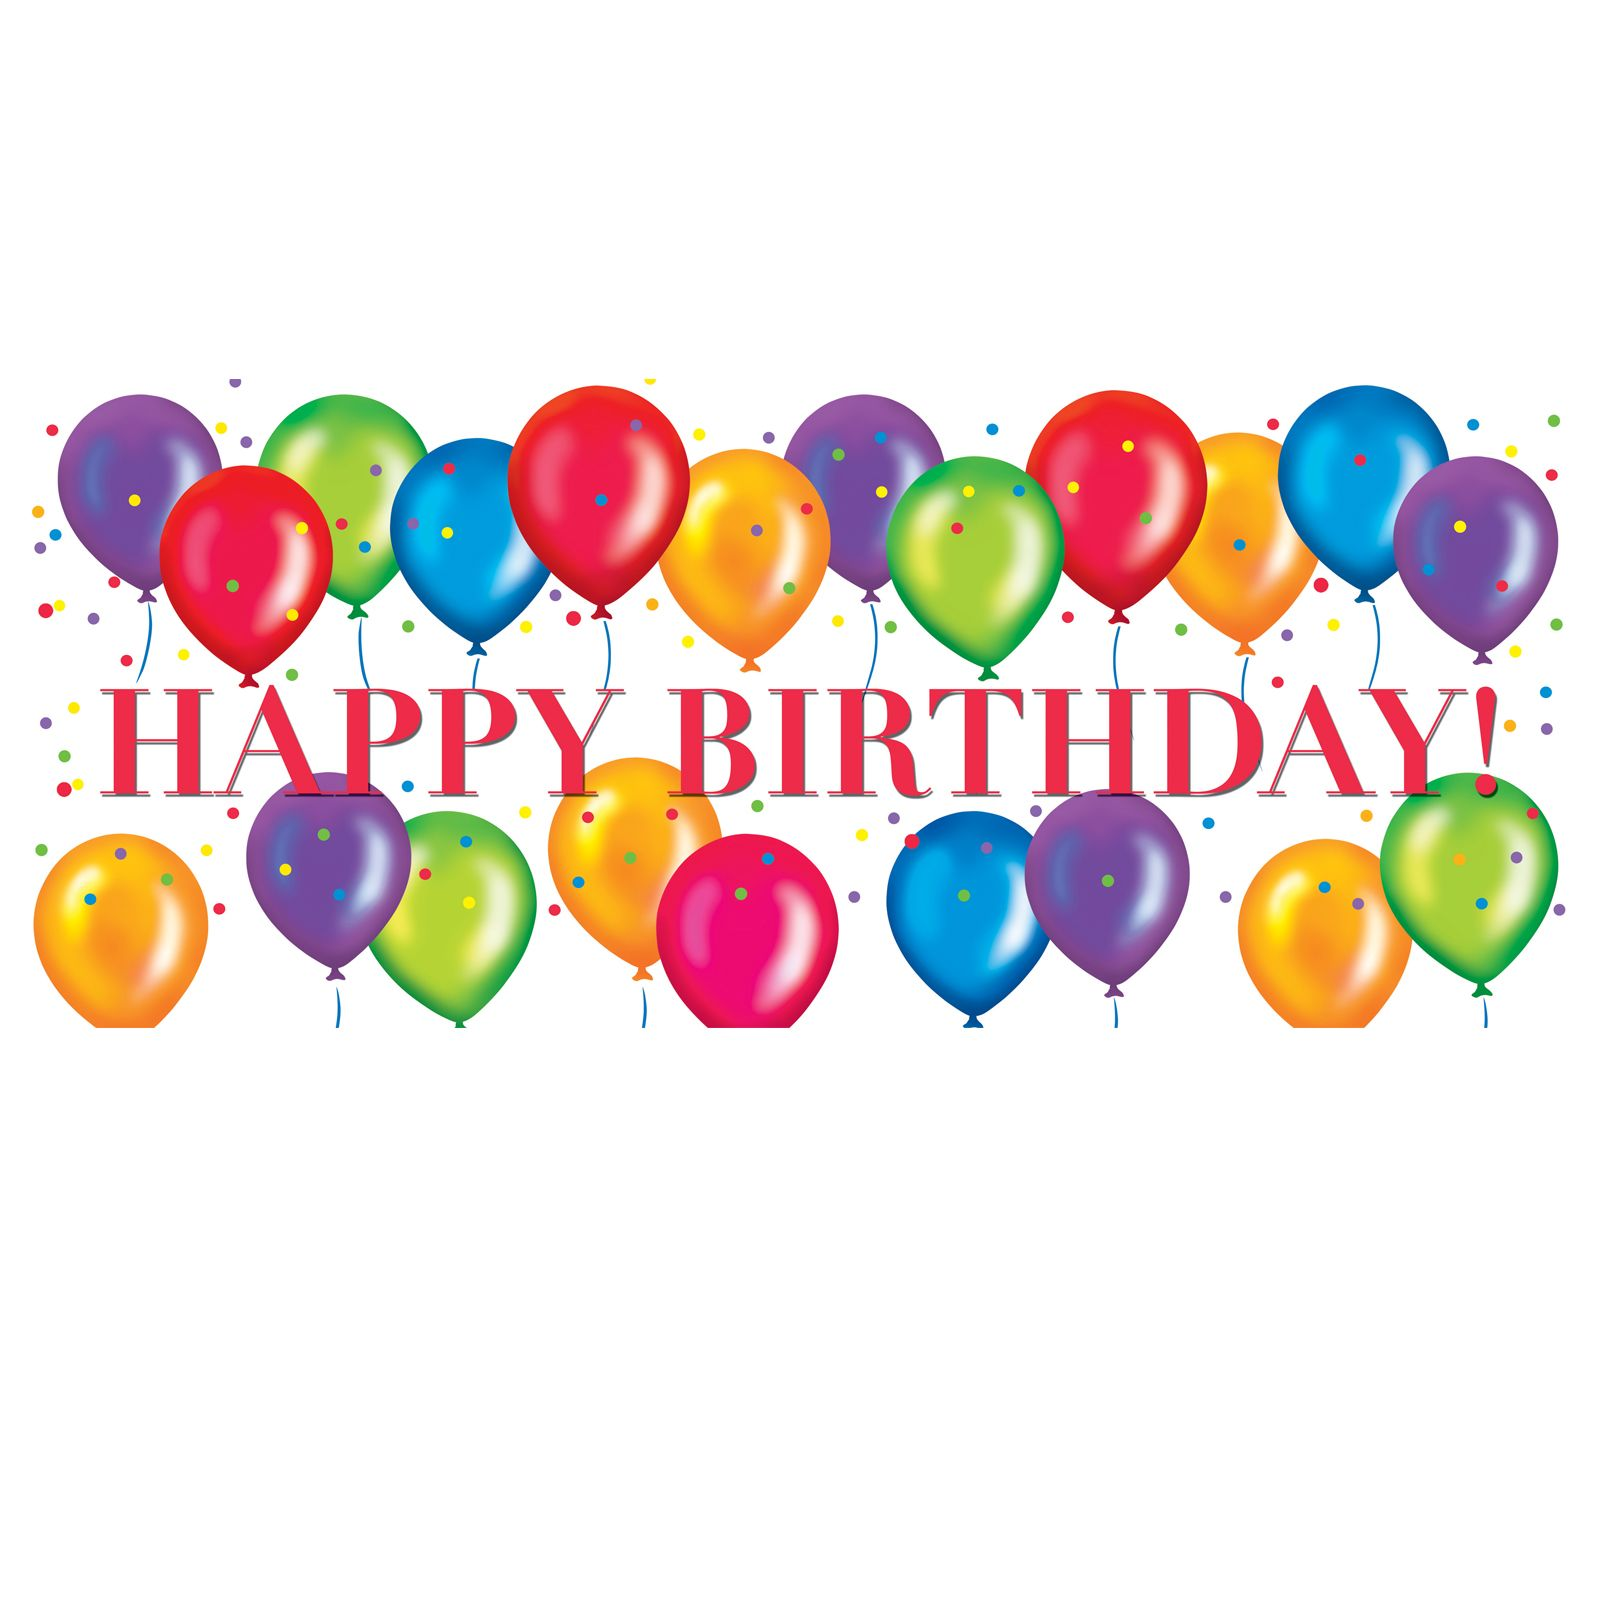 Birthday Balloons Clip Art Free: Free Happy Birthday Graphics